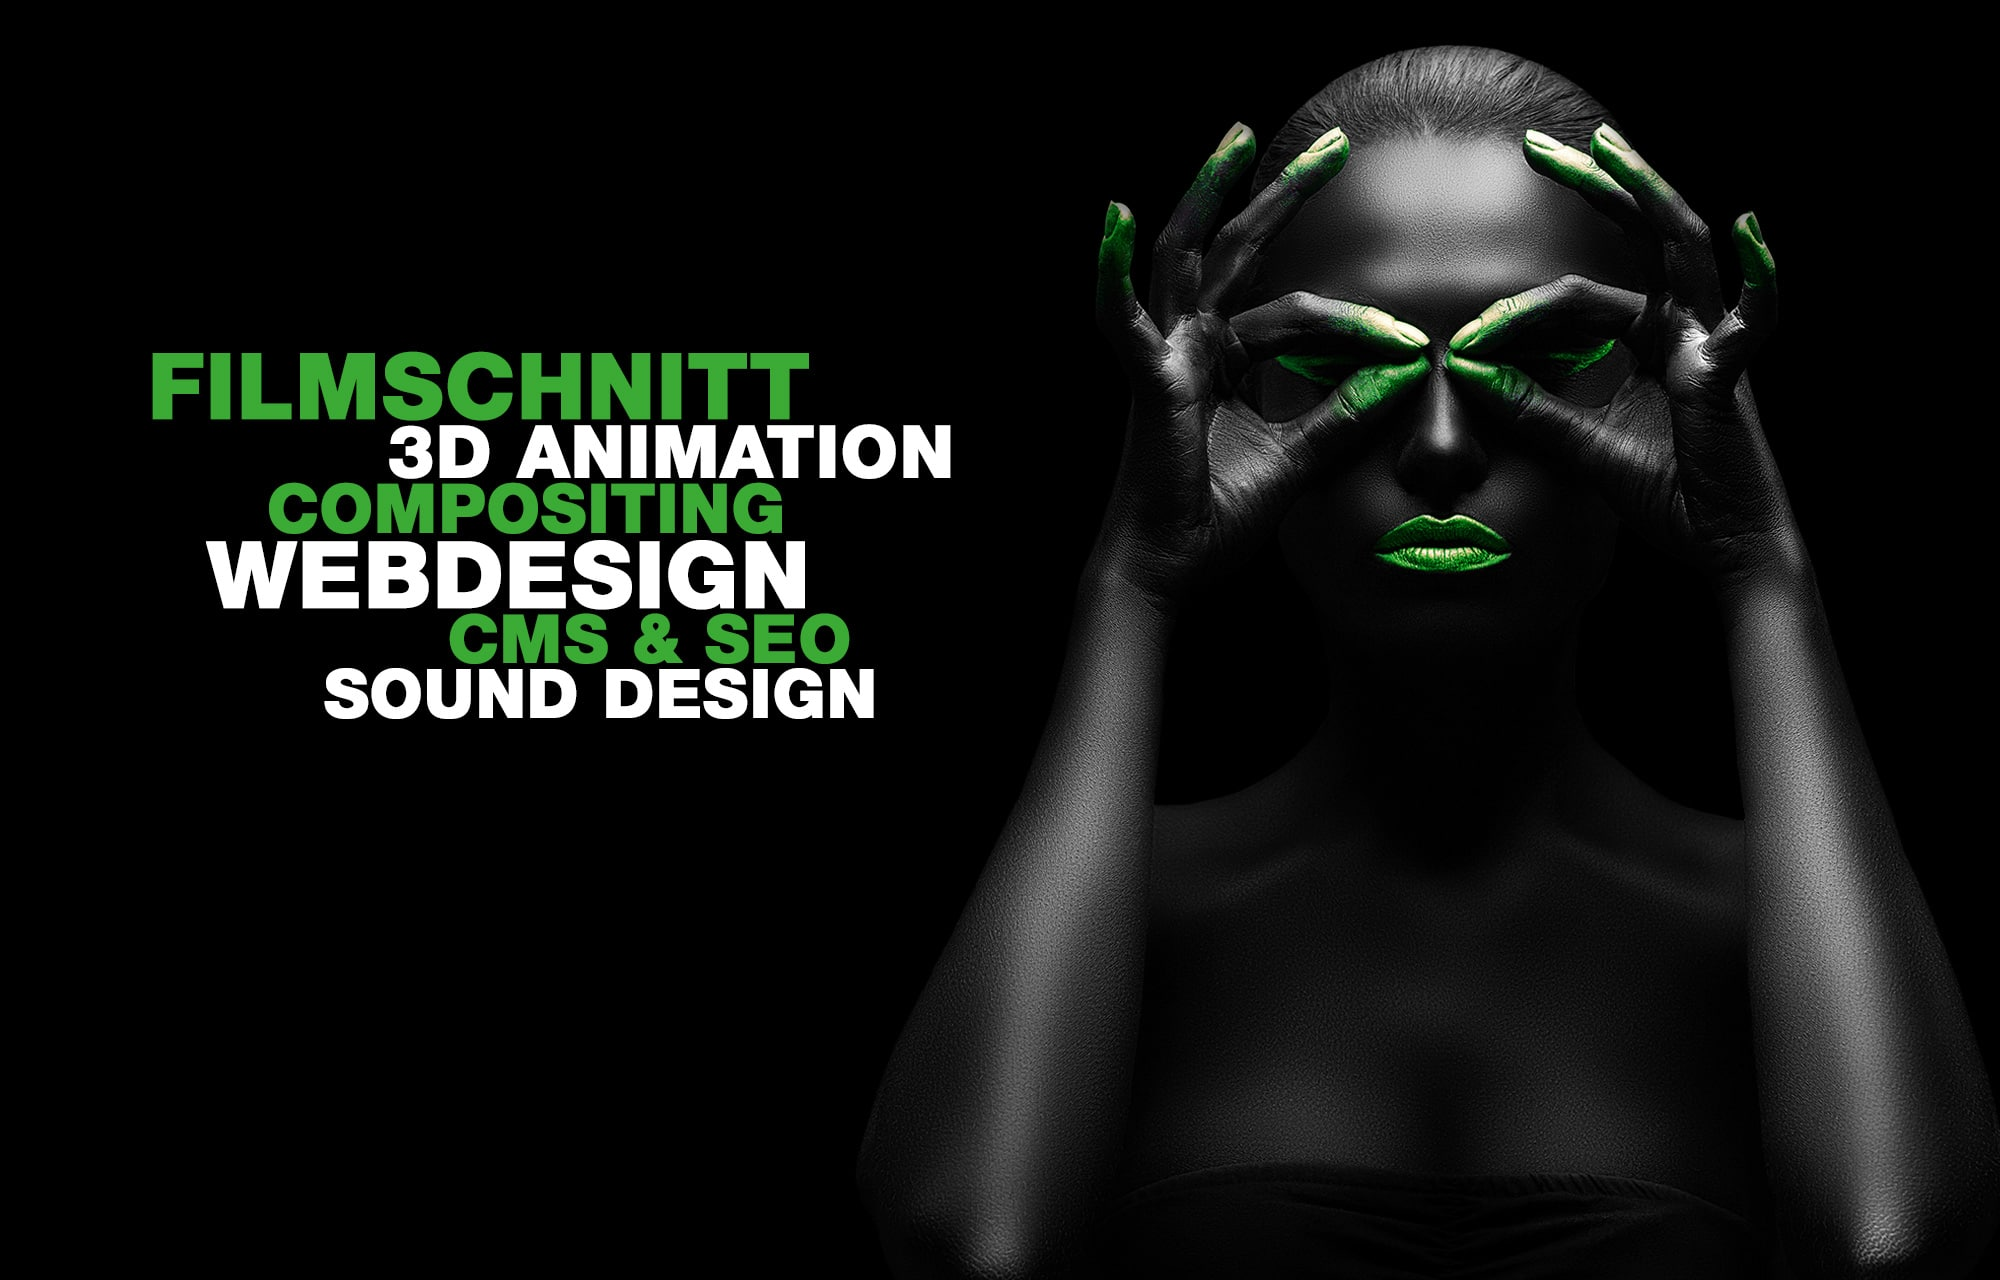 Filmschnitt, 3D Animation, Compositing, Webdesign, CMS